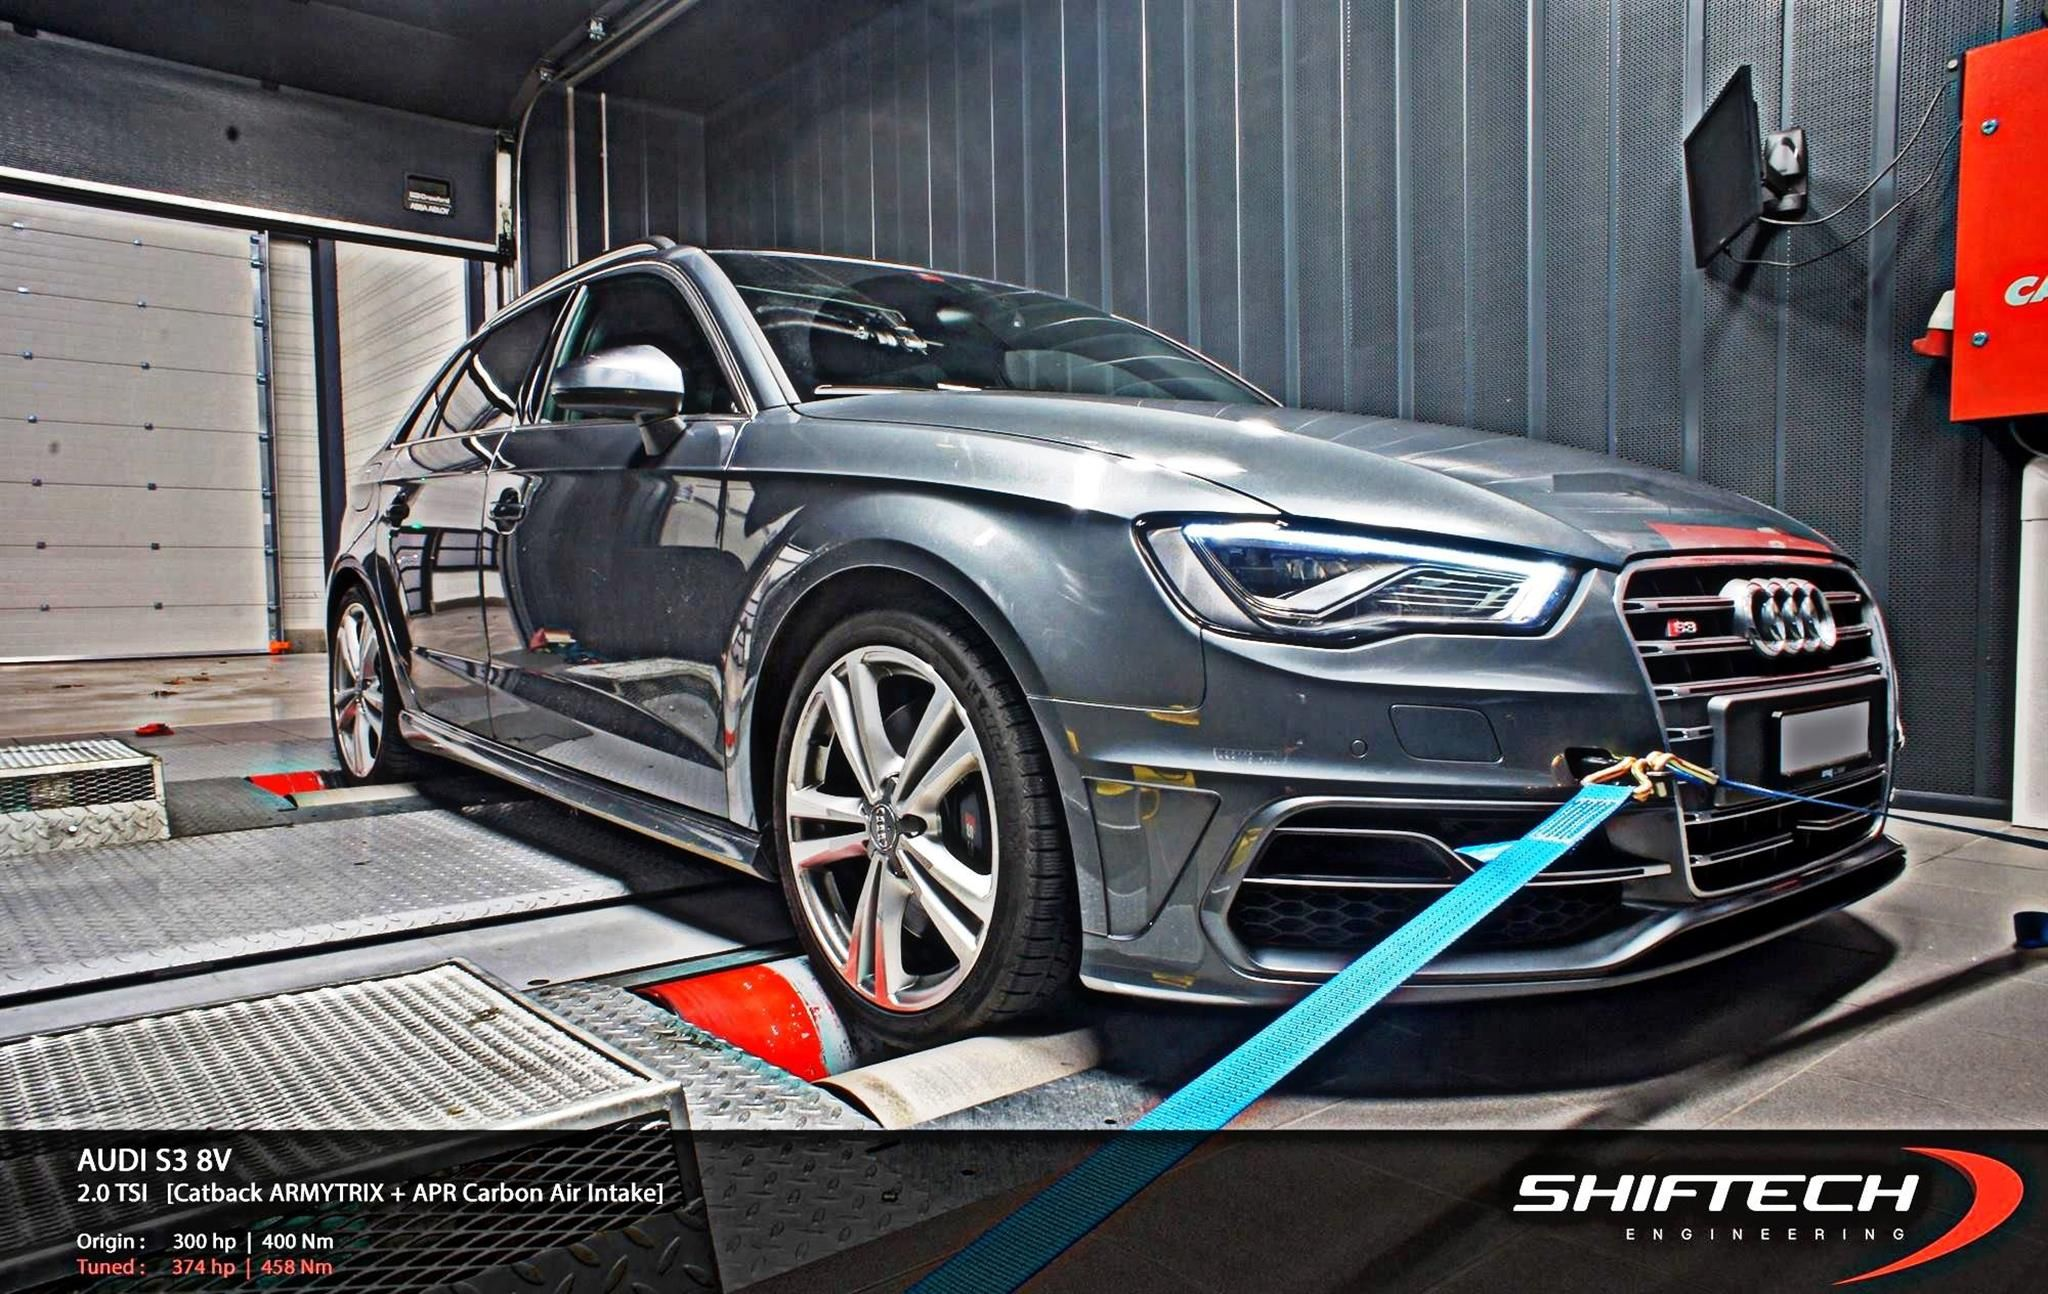 Audi S V TFSI Armytrix Project By ArmyTrix Click To View - Audi car origin